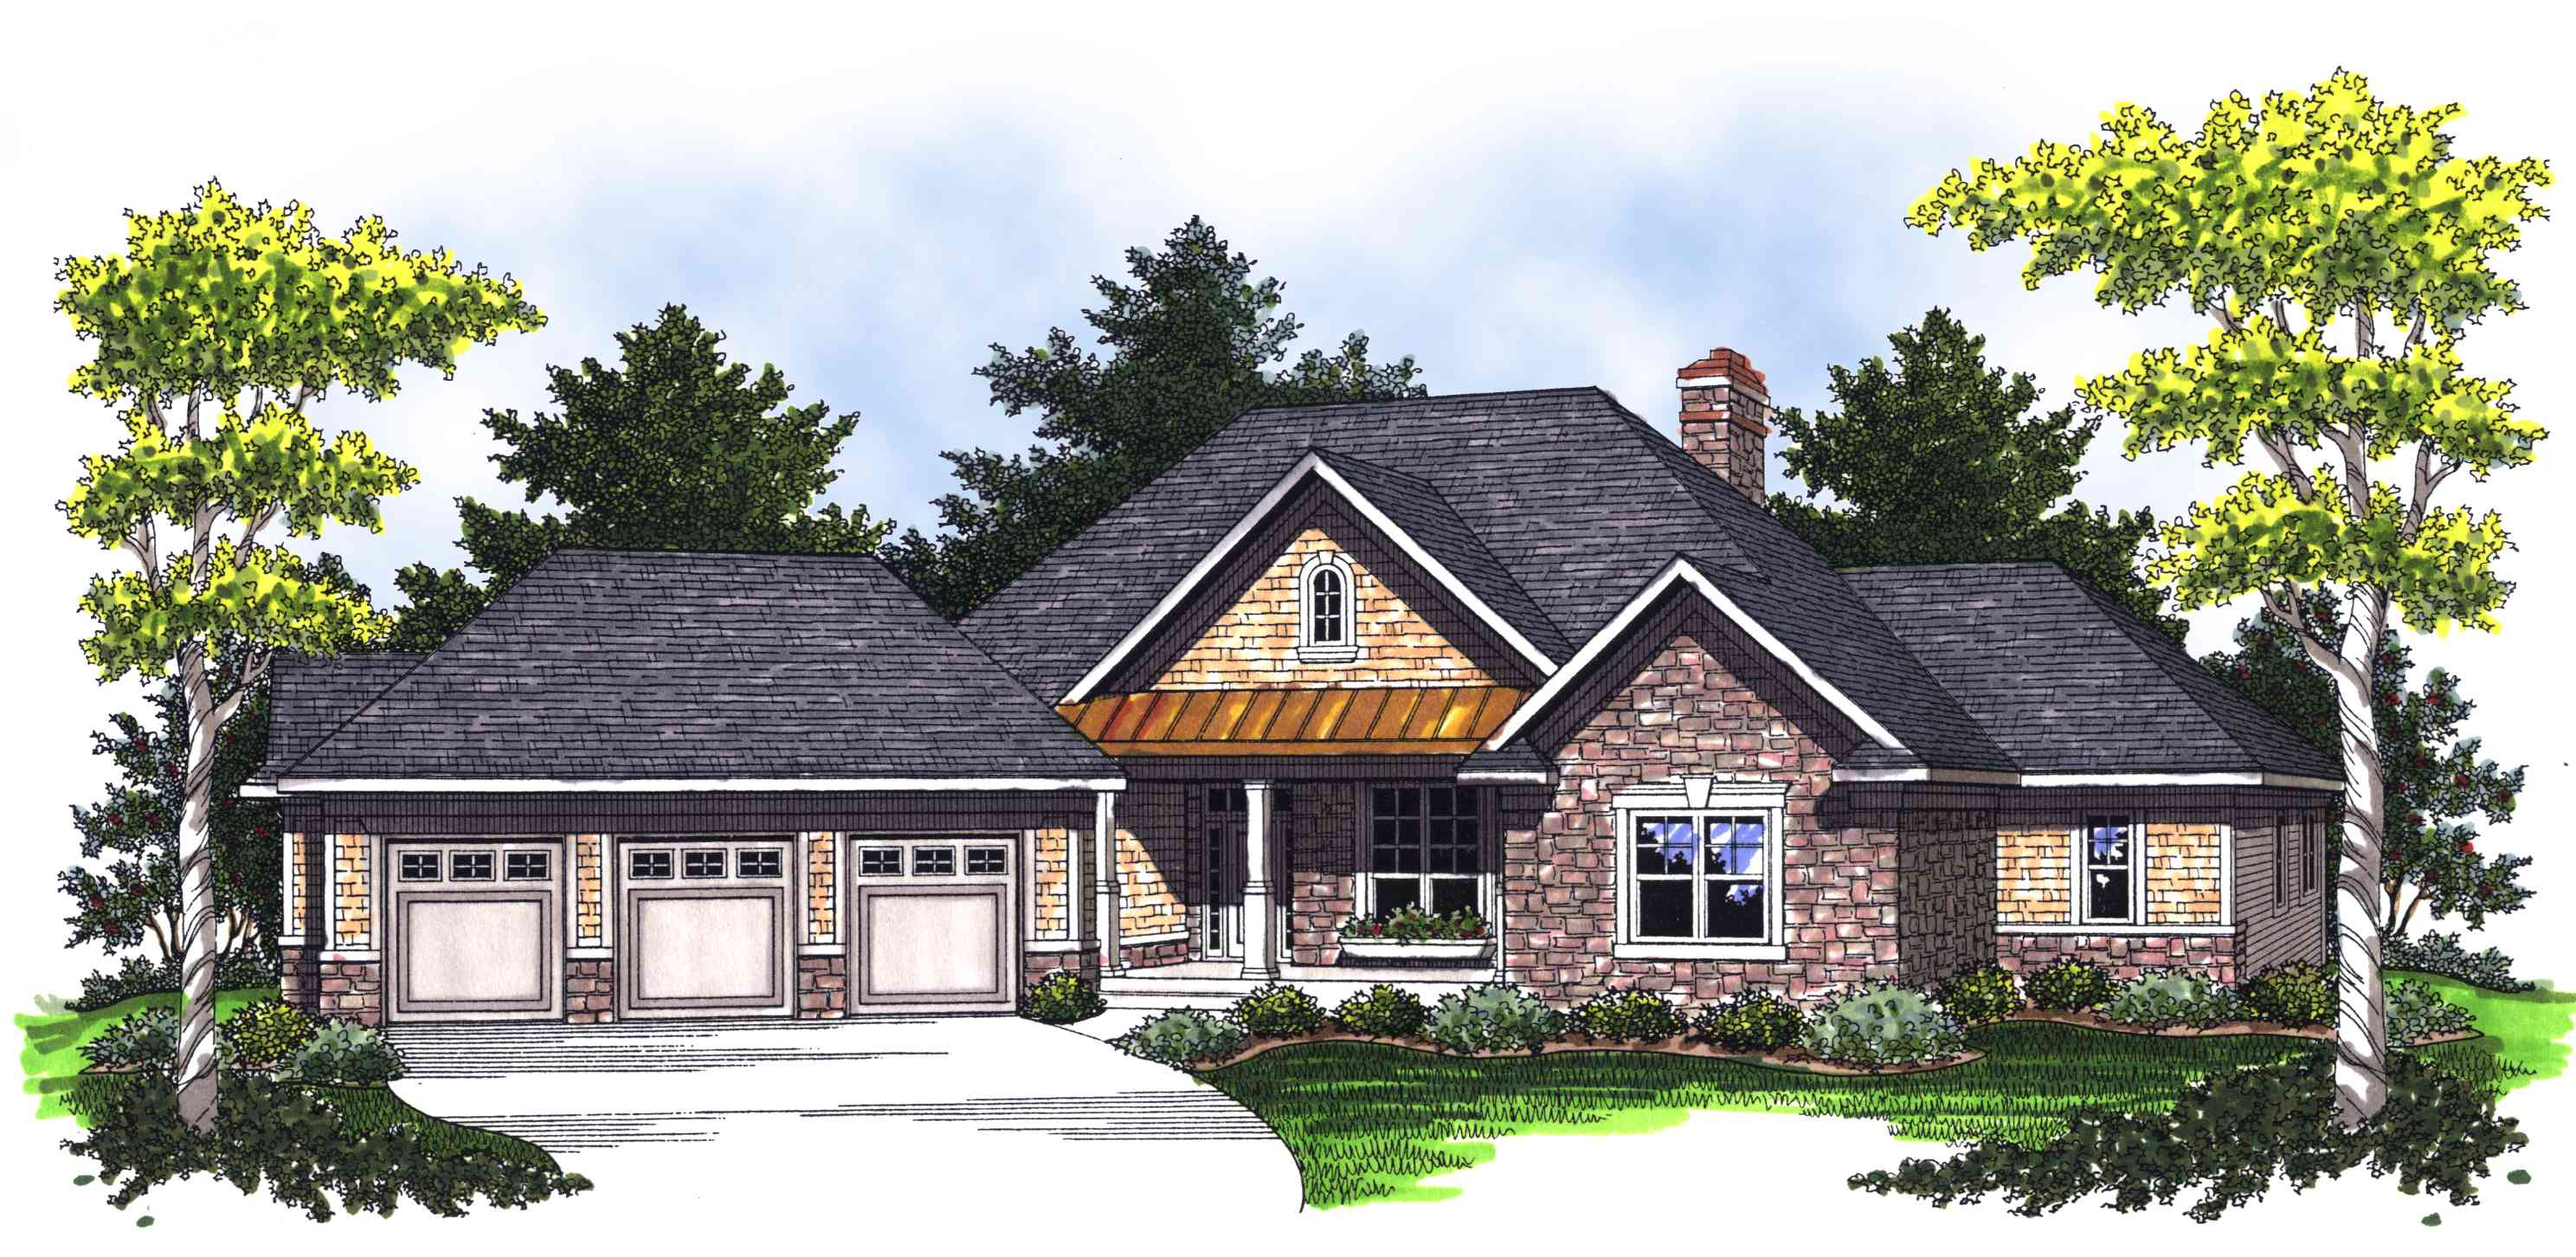 Ranch with large living and entertaining space 89242ah for Home plans for entertaining